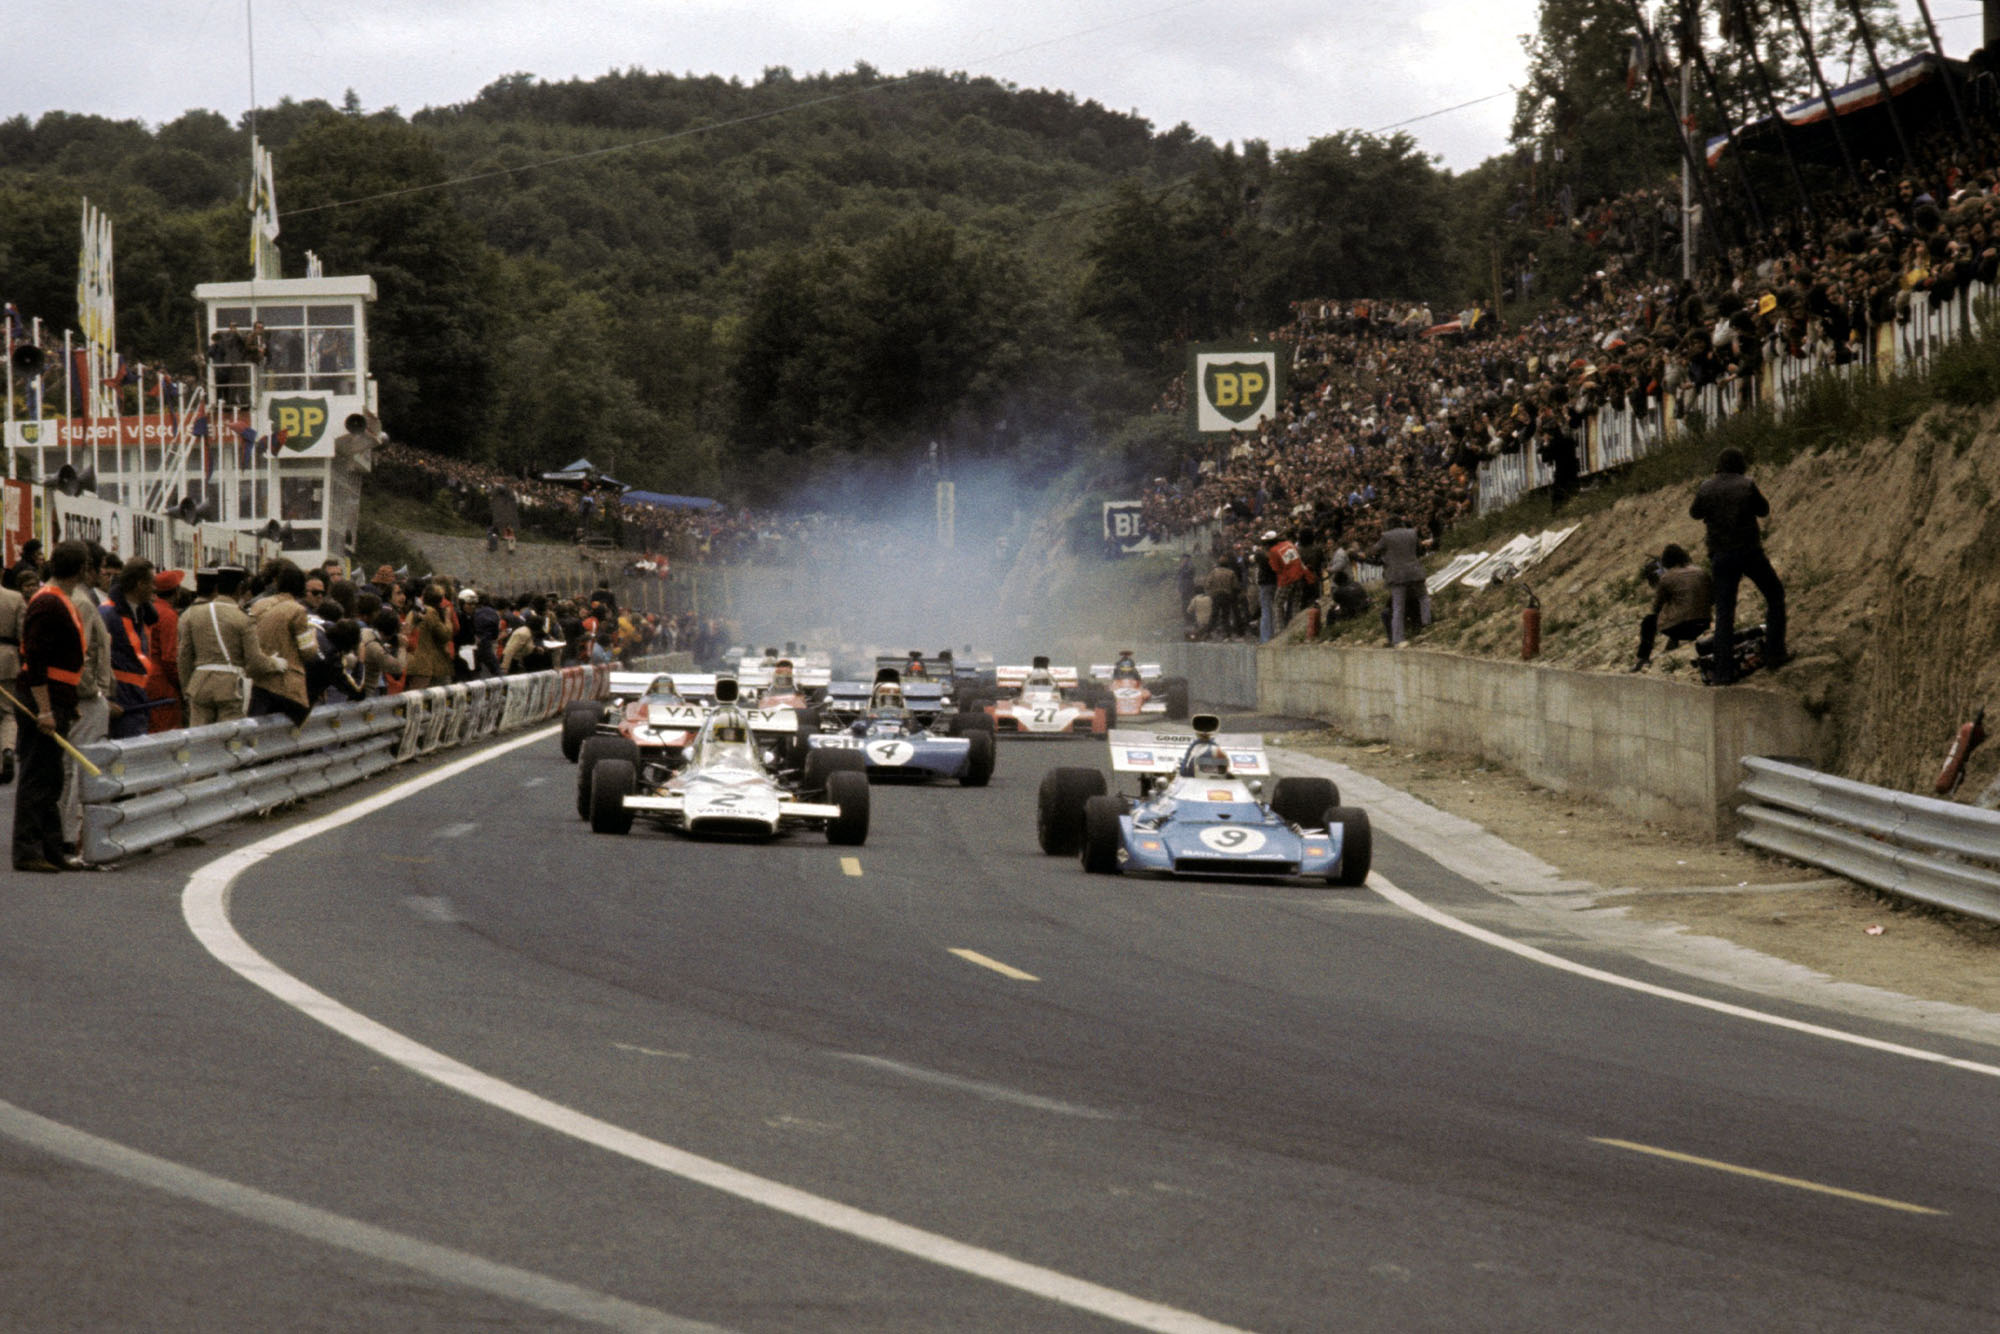 Chris Amon takes the lead as the field stes off at the 1972 French Grand Prix.